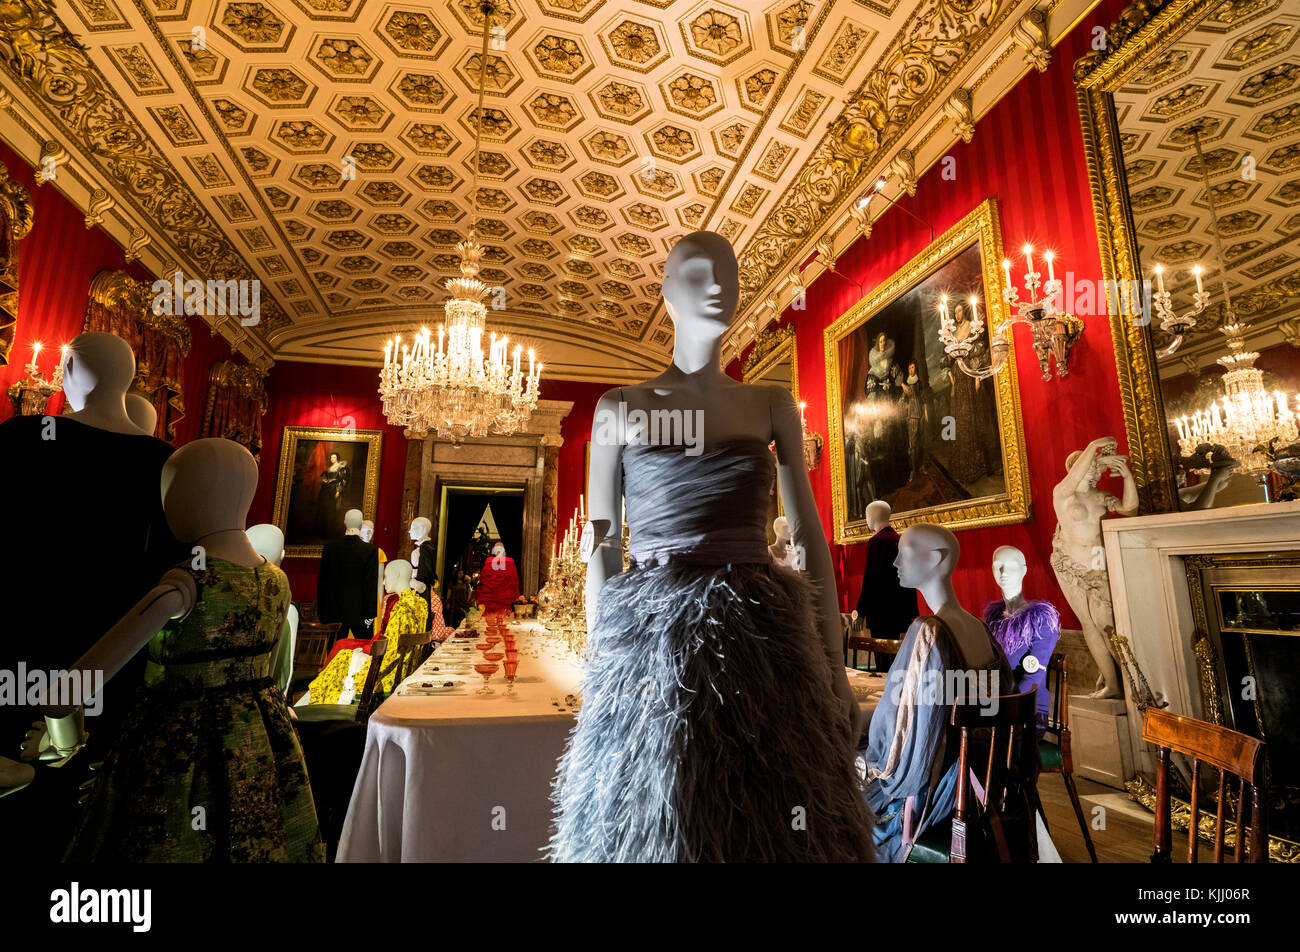 CHATSWORTH HOUSE (1687)           BAKEWELL DERBYSHIRE     UNITED KINGDOM - Stock Image